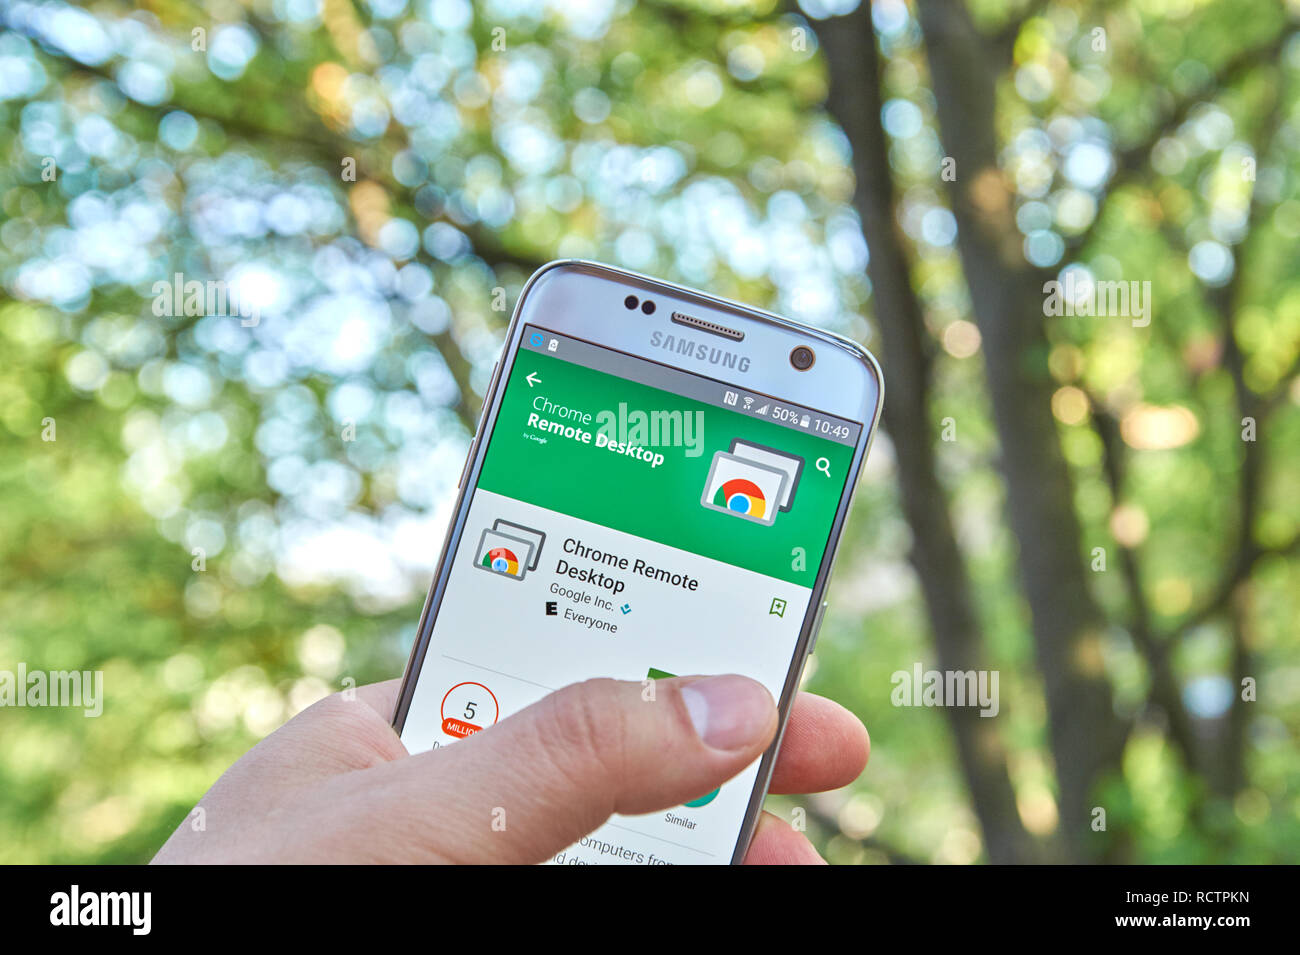 MONTREAL, CANADA - MAY 23, 2016 : Google Chrome Remote